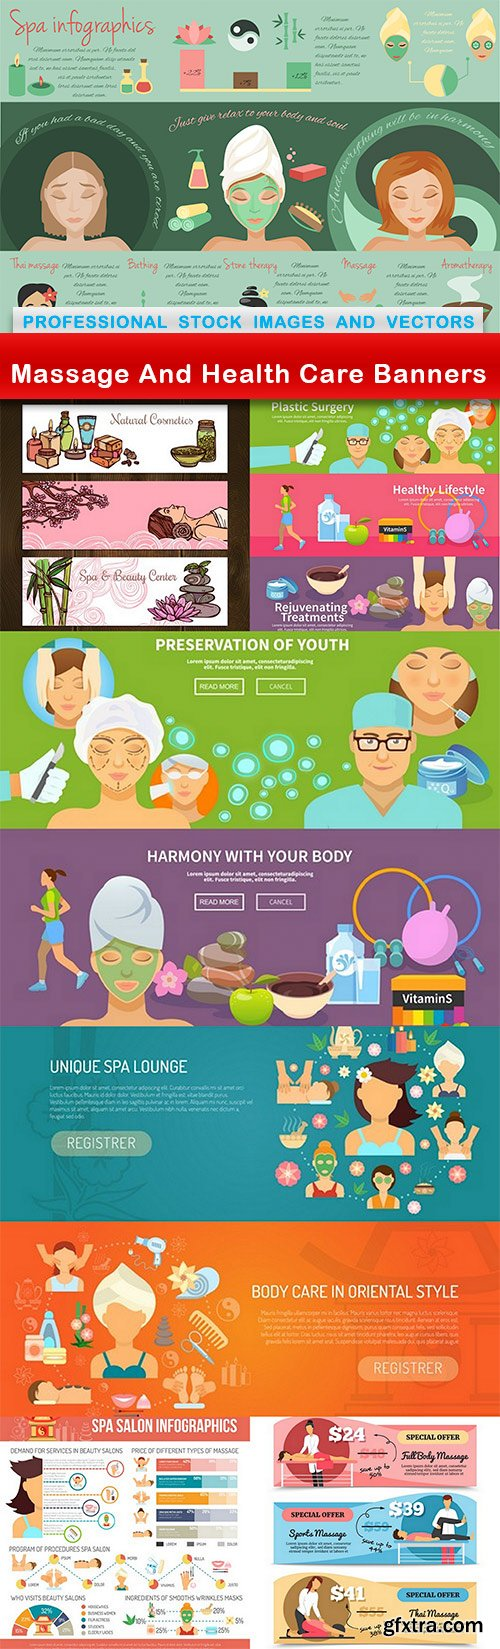 Massage And Health Care Banners - 7 EPS